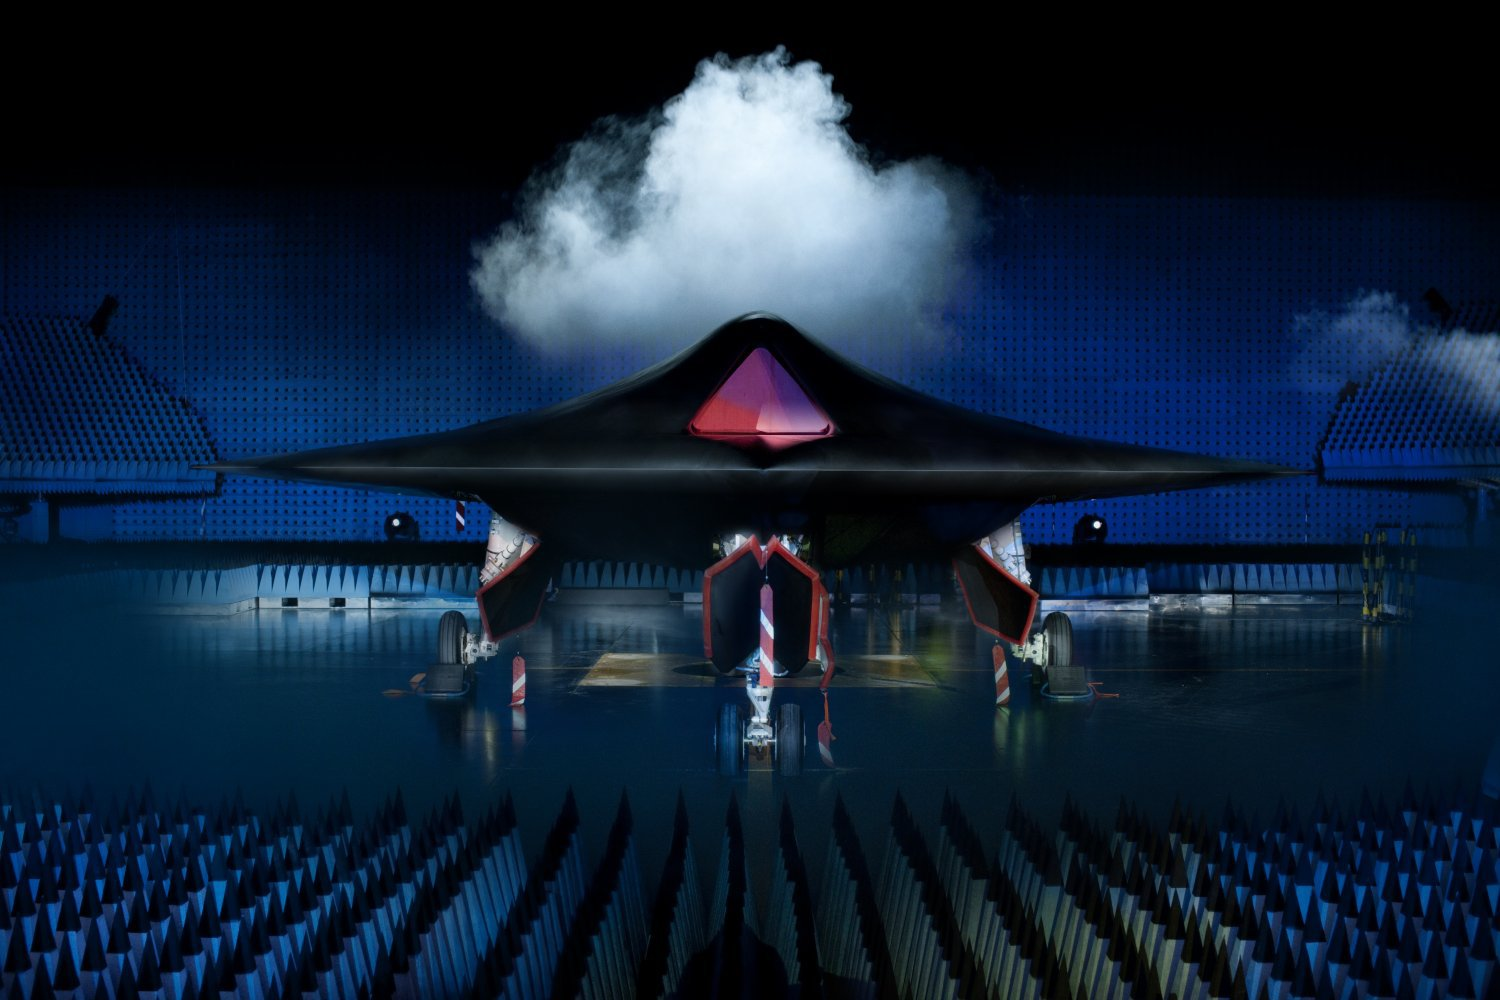 BAE Taranis Jet UCAV Low Observable 1 <!  :en  >BAE Taranis UCAV (Unmanned Combat Air Vehicle): Meet the New Jet Powered, Weaponized, Low Observable, and Autonomous God of Thunder<!  :  >